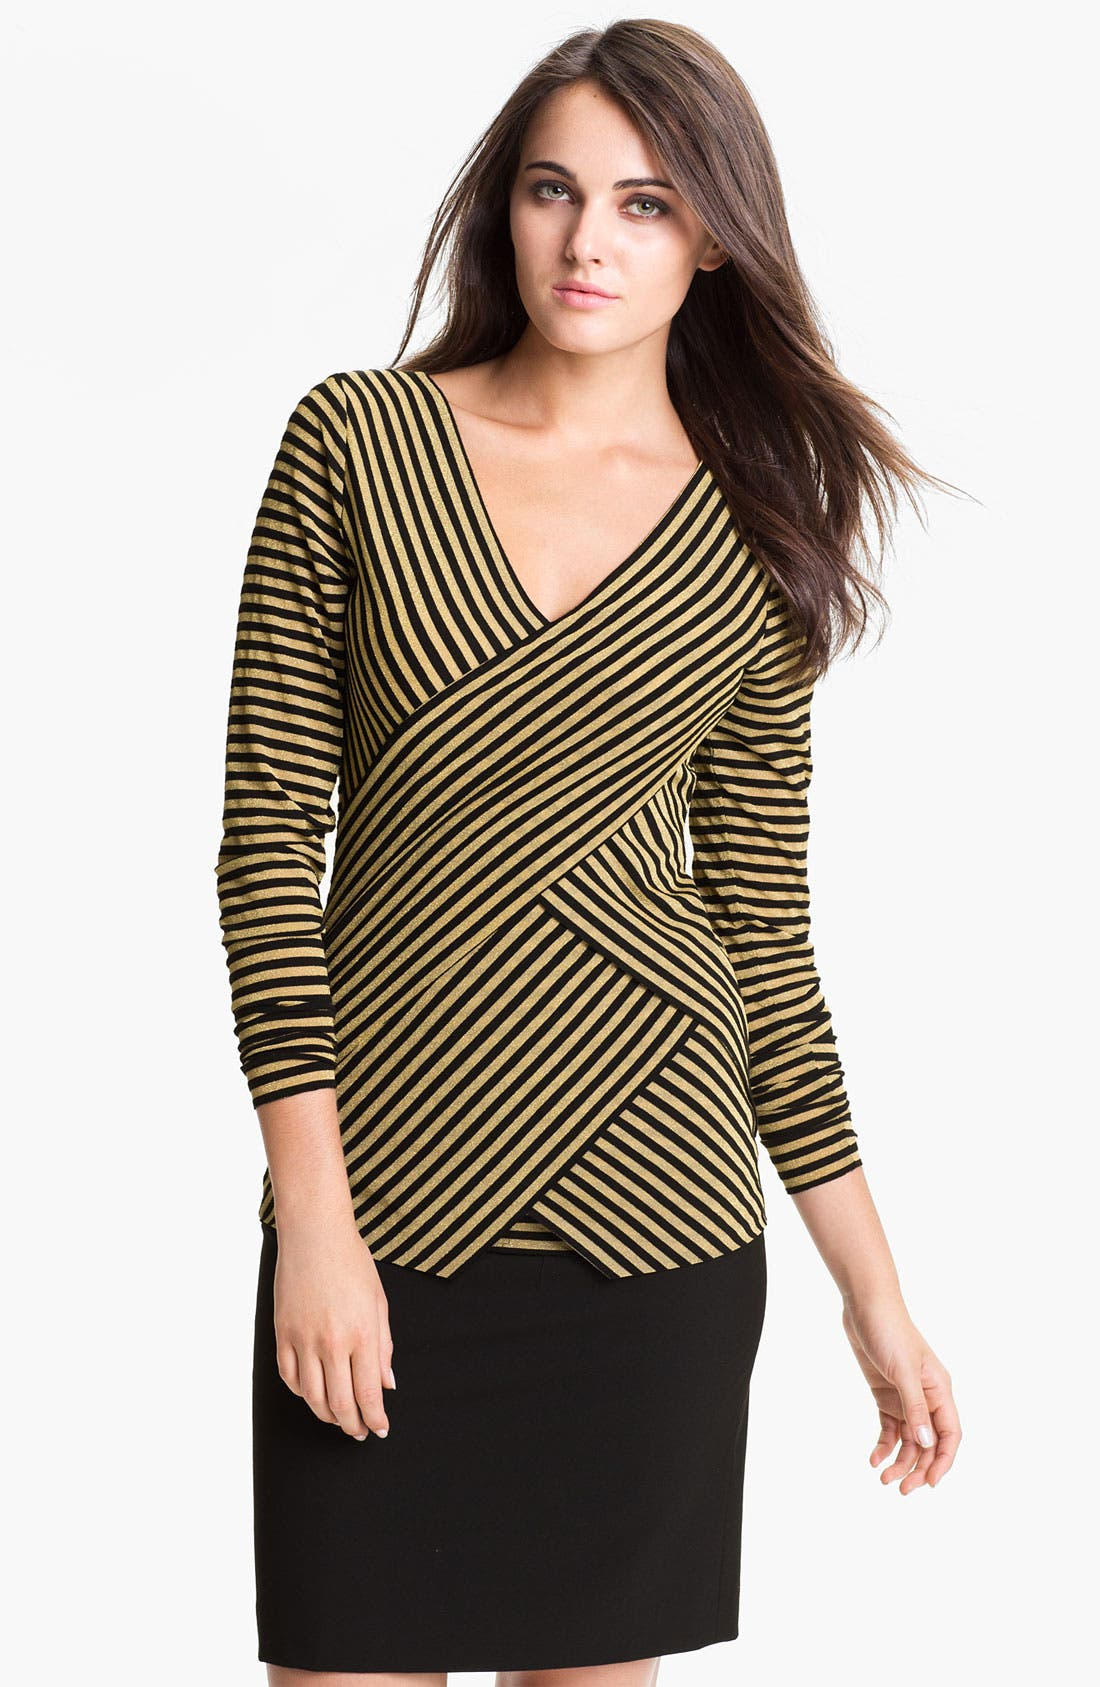 Alternate Image 1 Selected - Vince Camuto 'Sparkle Stripe' Zigzag Top